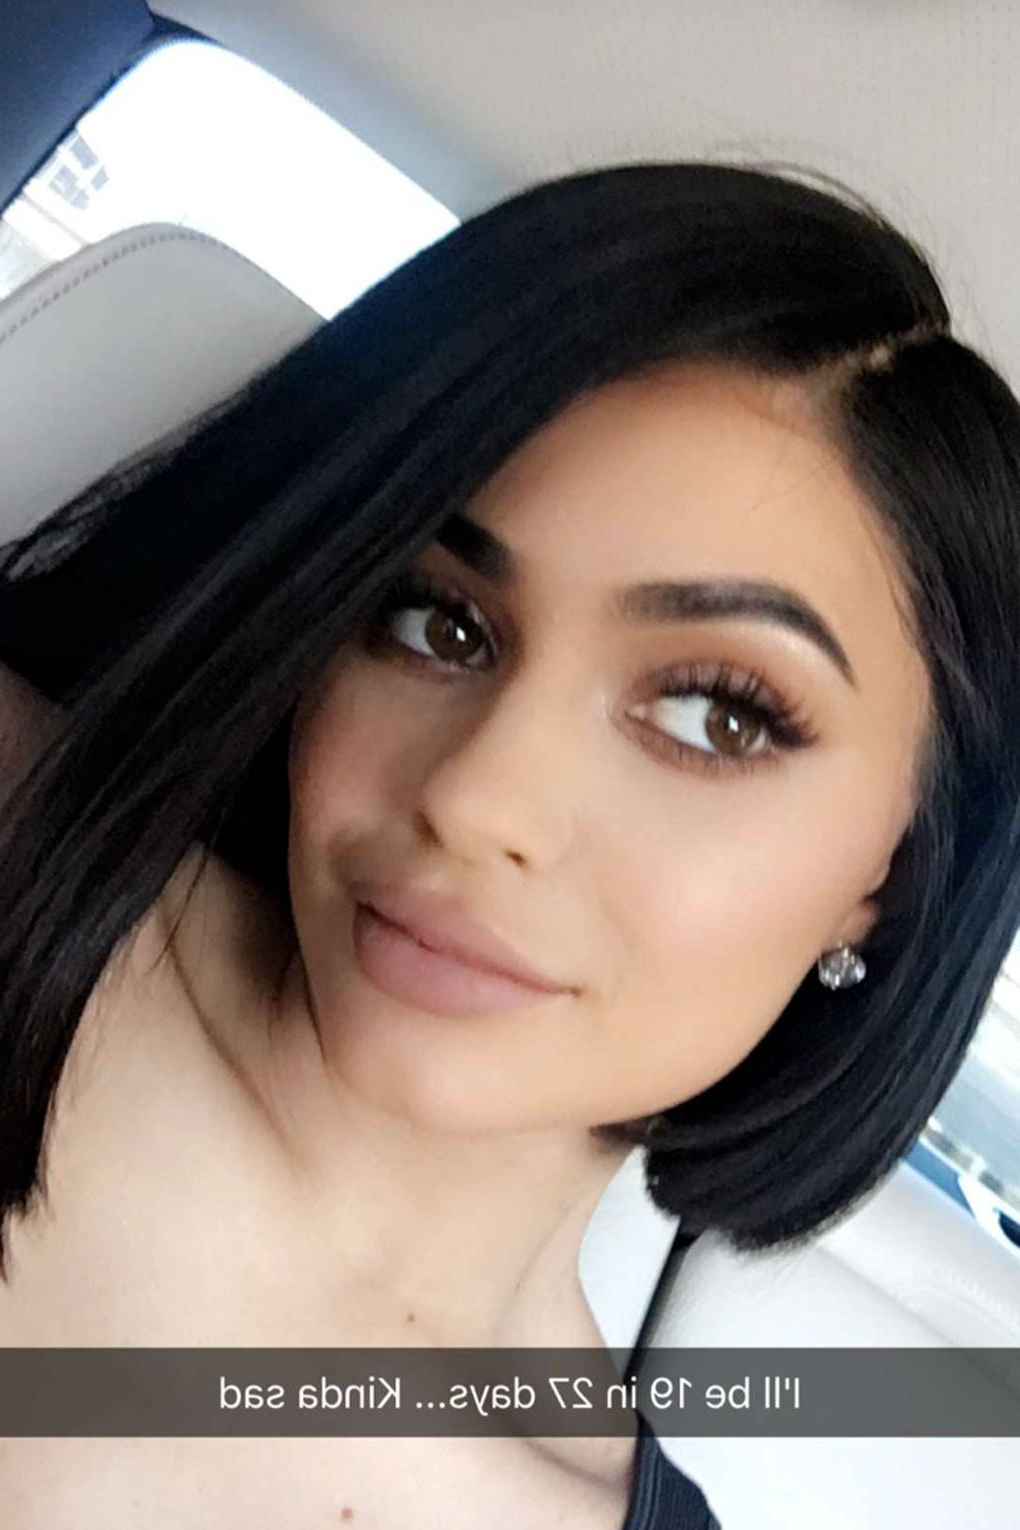 Kylie Jenner Short Hair Bob Haircut Pictures 2016 | Glamour Uk For Kylie Jenner Short Haircuts (View 15 of 25)